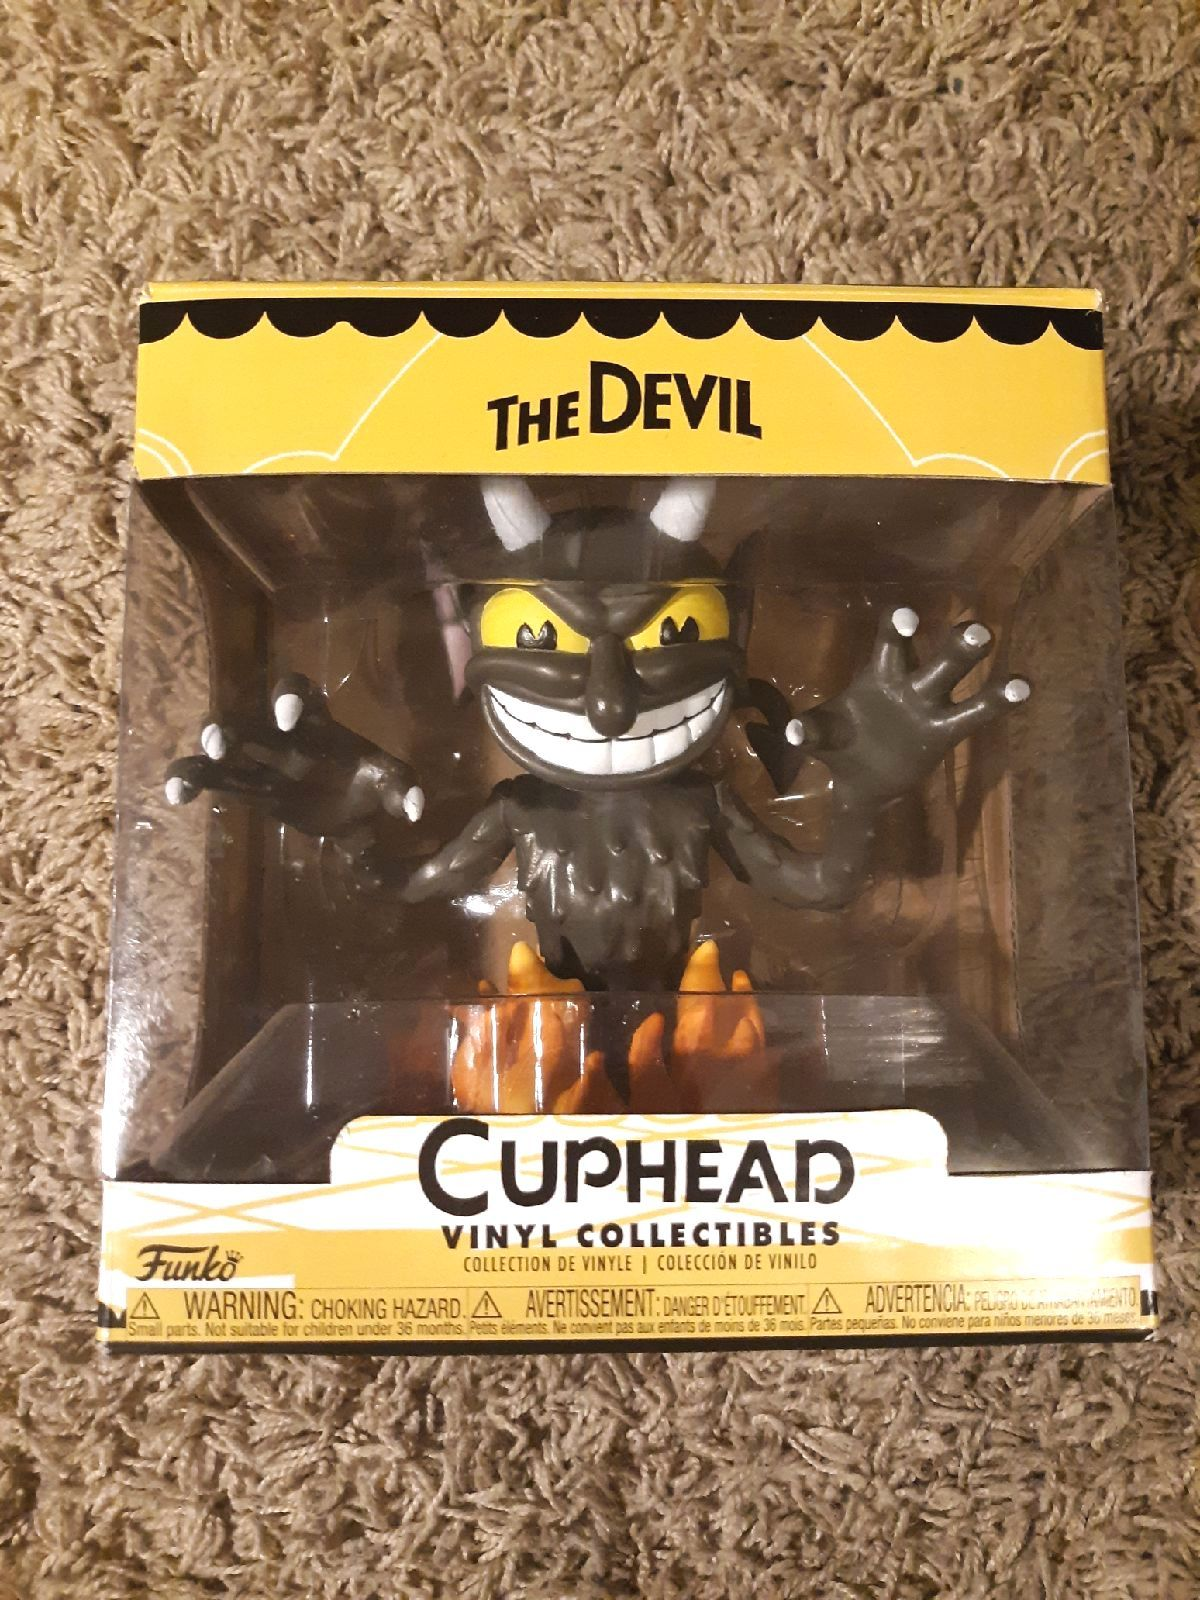 Funko Vinyl Very Nice Condition Exactly As Shown He S Got Some Weight To Him Great Size And Design Details Gamestop Purchase Vinyl Funko Vinyl Design Details